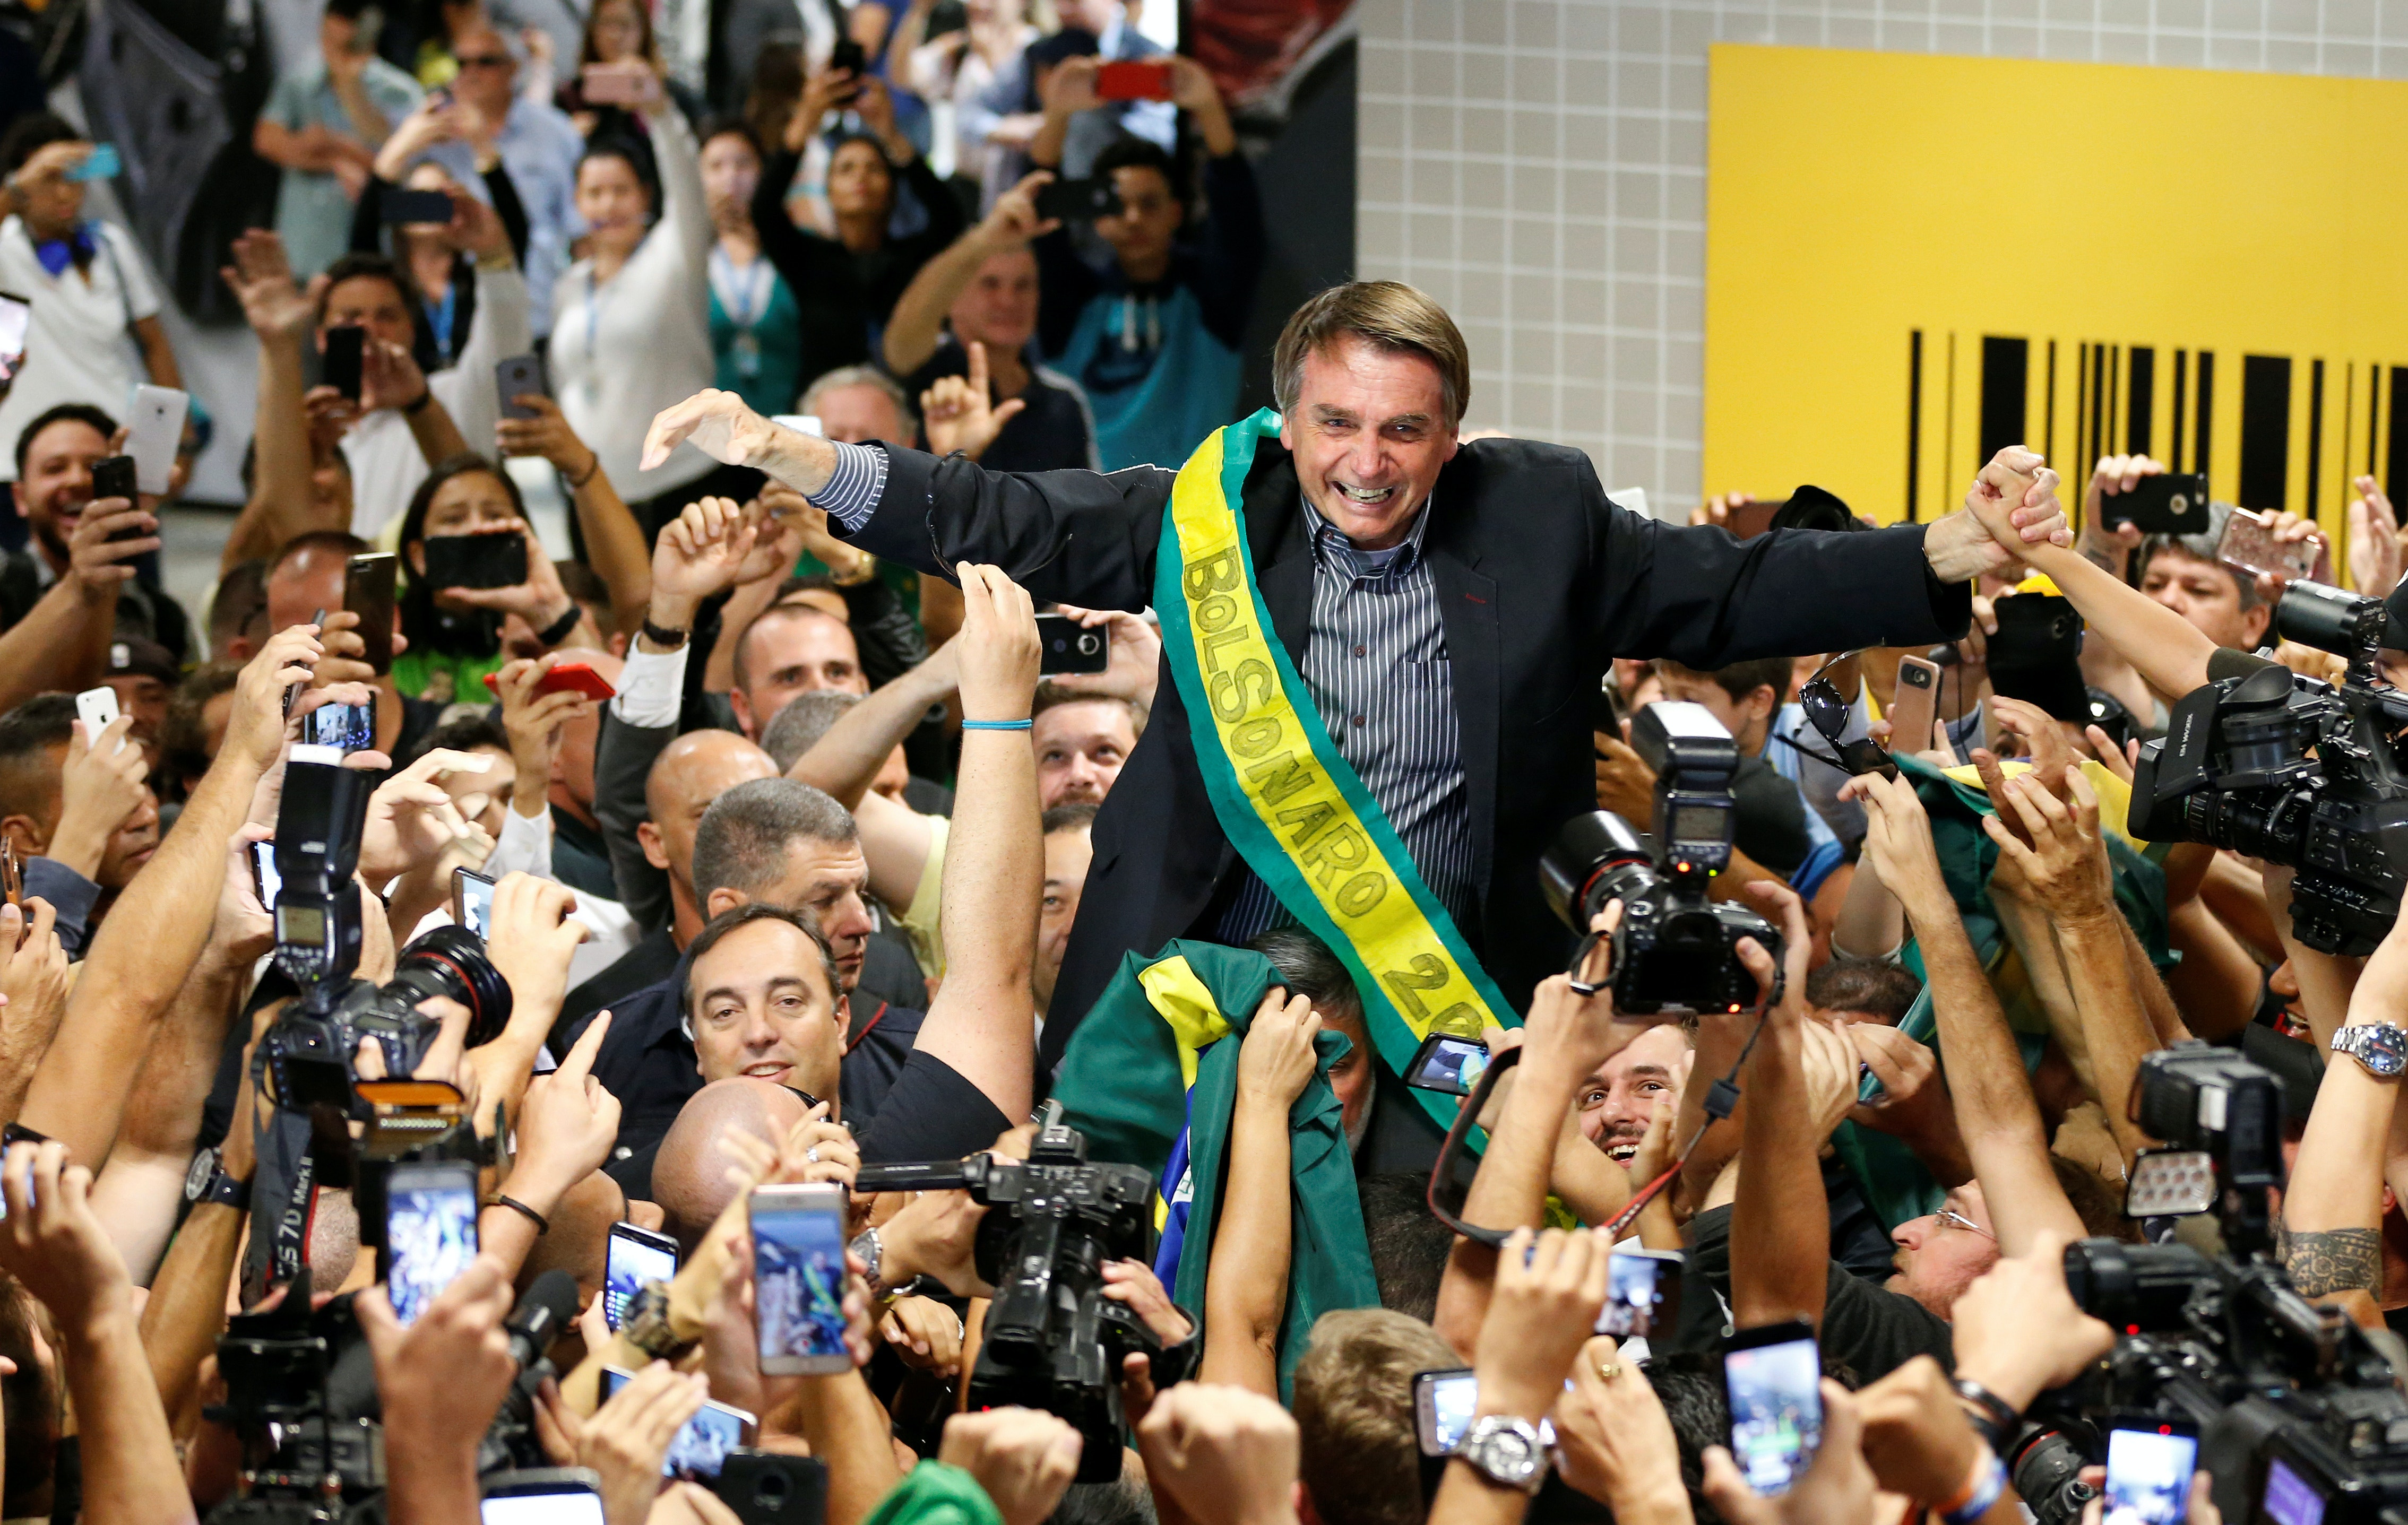 Brazilian candidate still crushing his rivals from jail